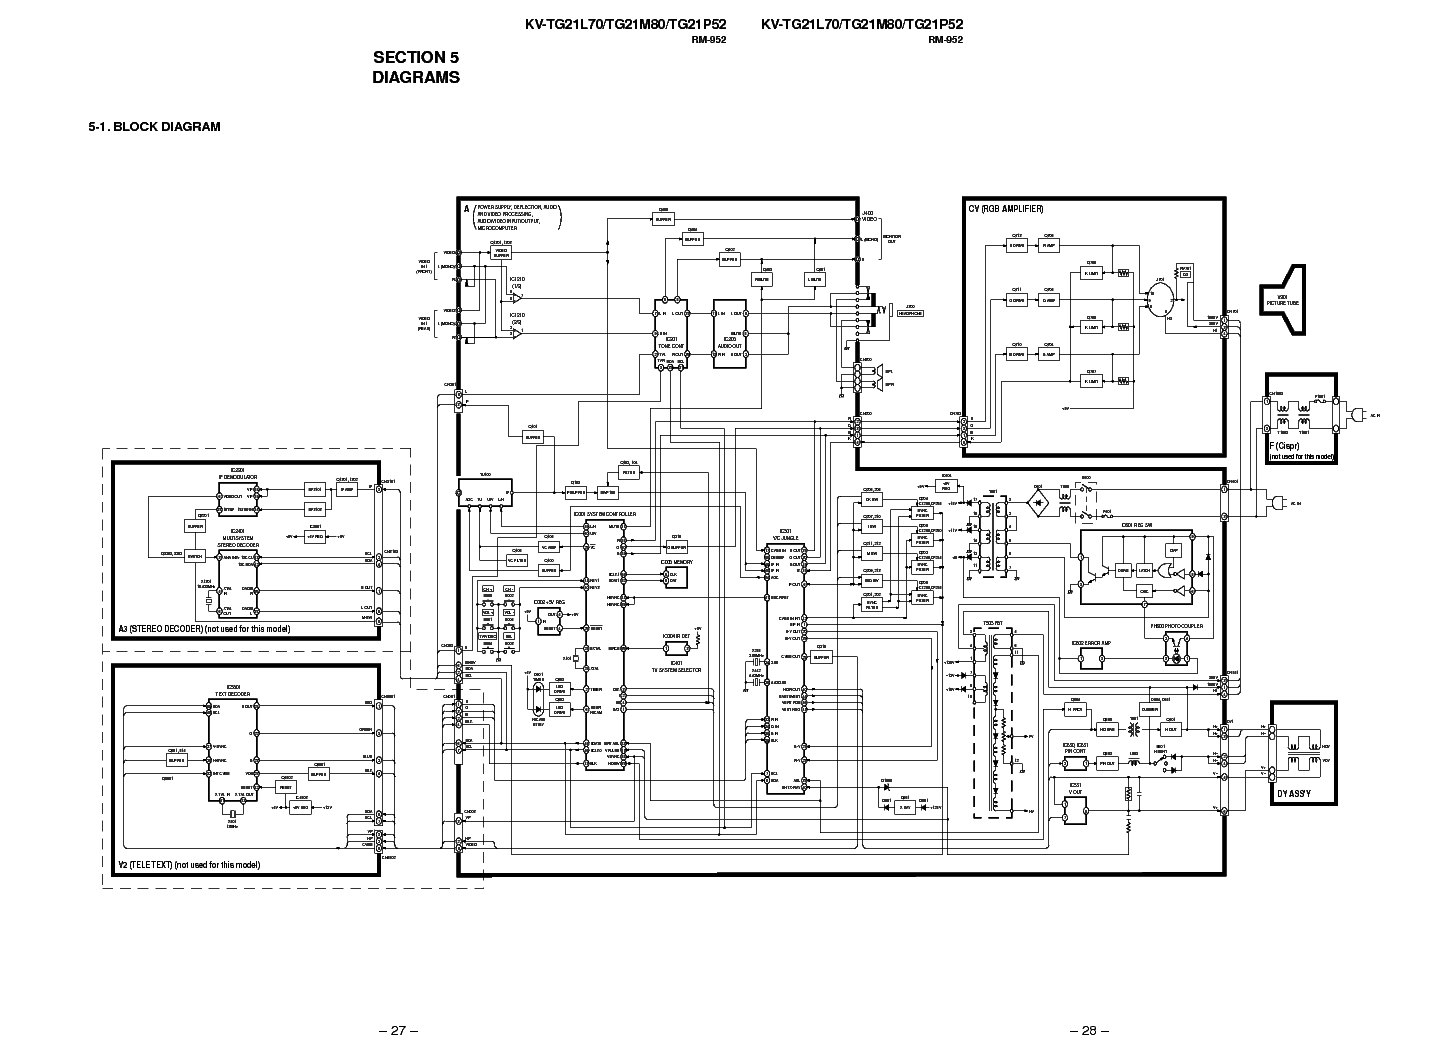 SONY KV-TG21P52 Service Manual download, schematics